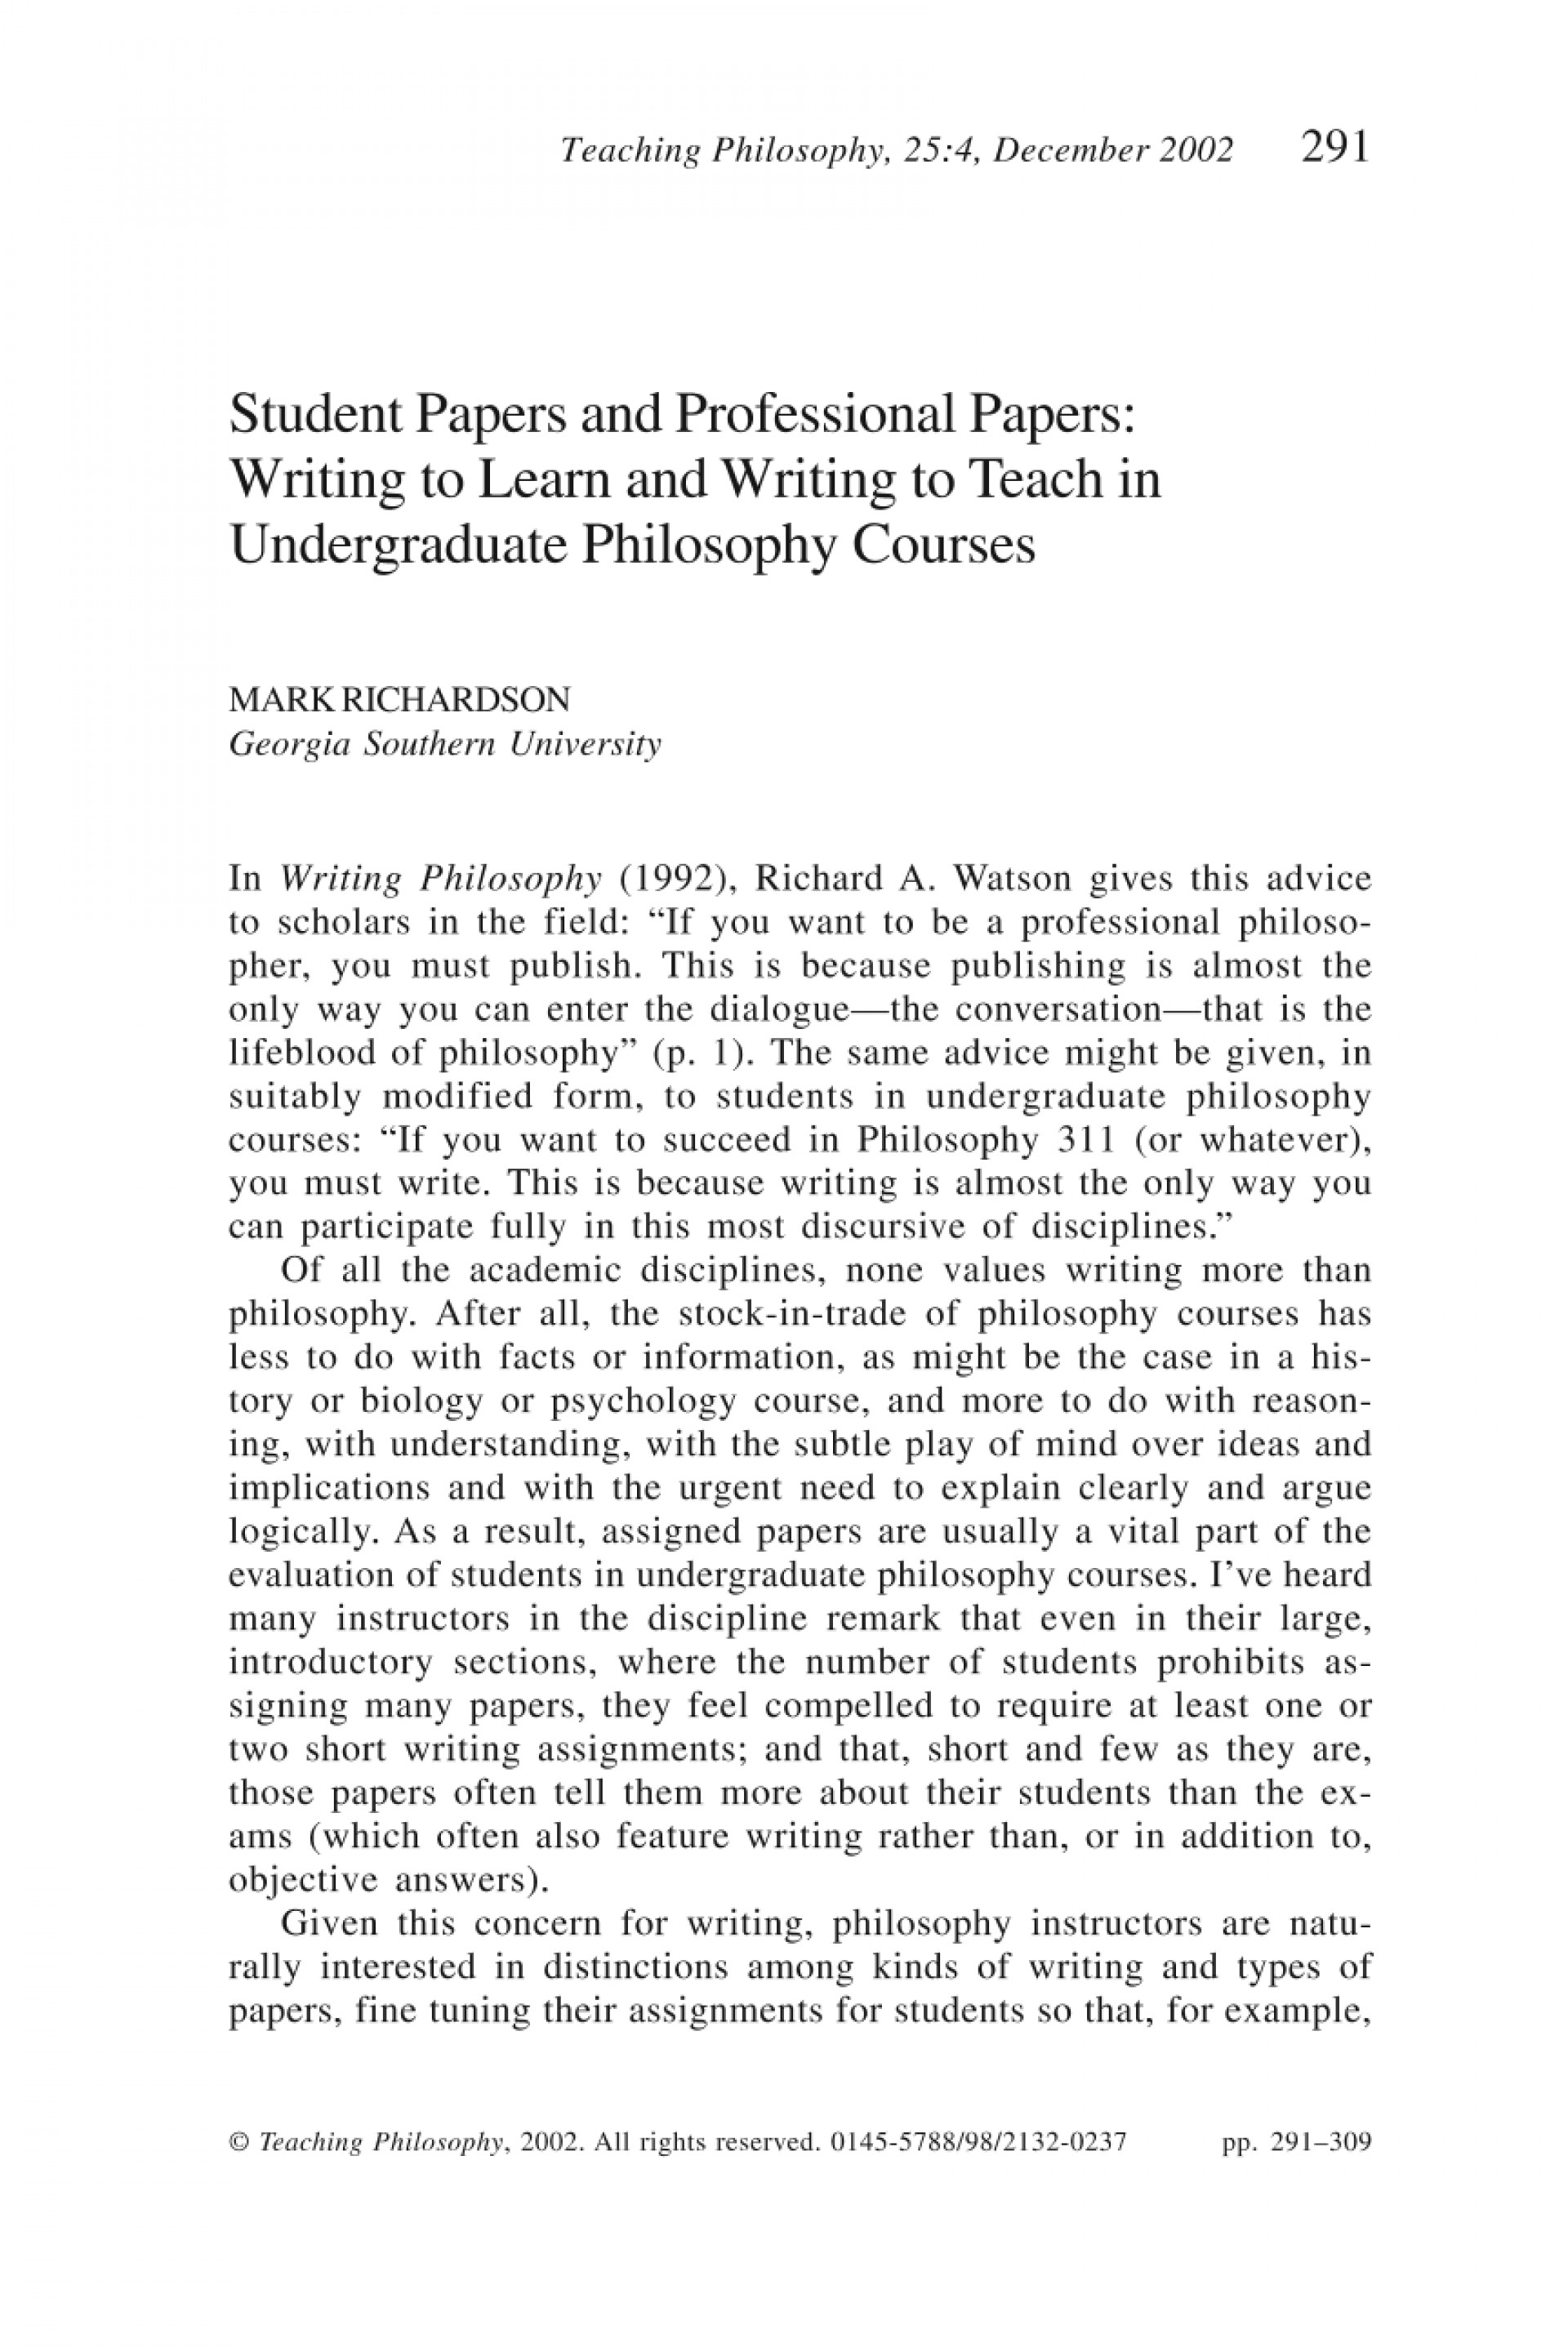 005 Essay Example Philosophy Of Teaching Personal Nursing Writing Paper Outline Pdf2imagepdfnameteachphil 2002 0025 0004 0291 For Beginners Political Format Dreaded My And Learning Education Pdf 1920